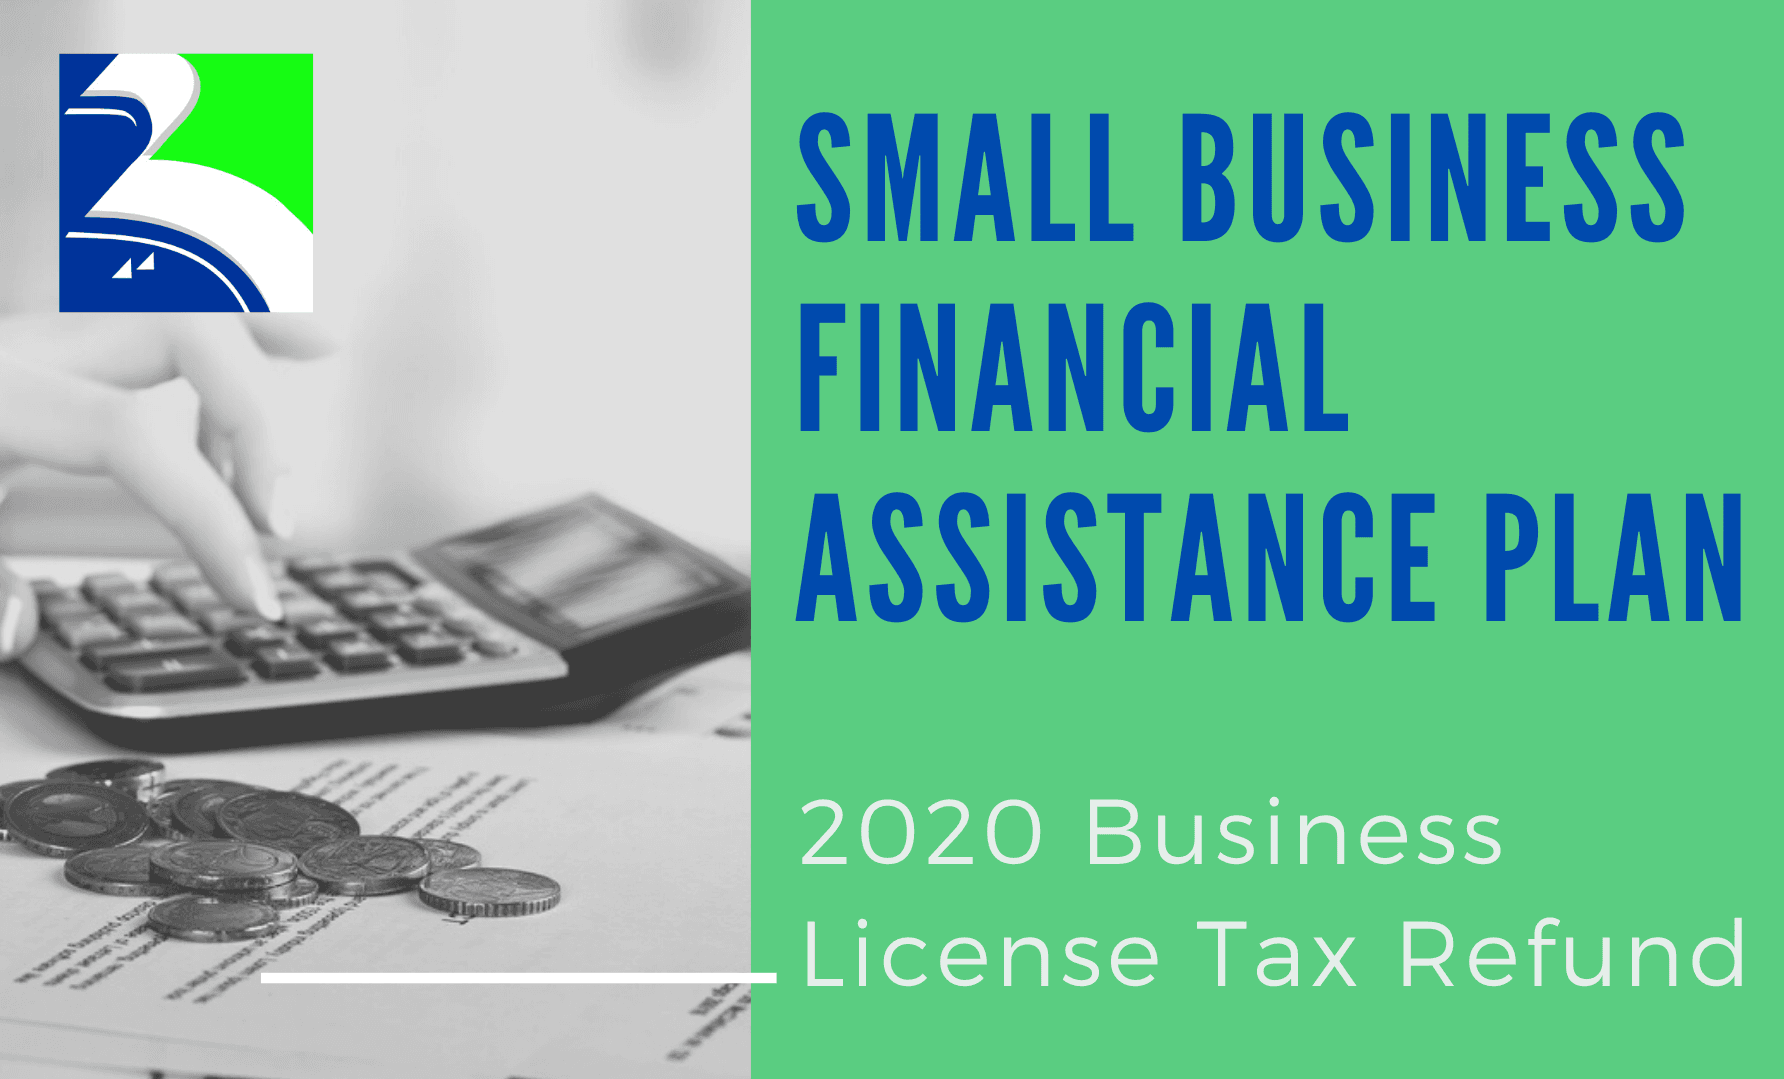 2020 Business License Tax Refund